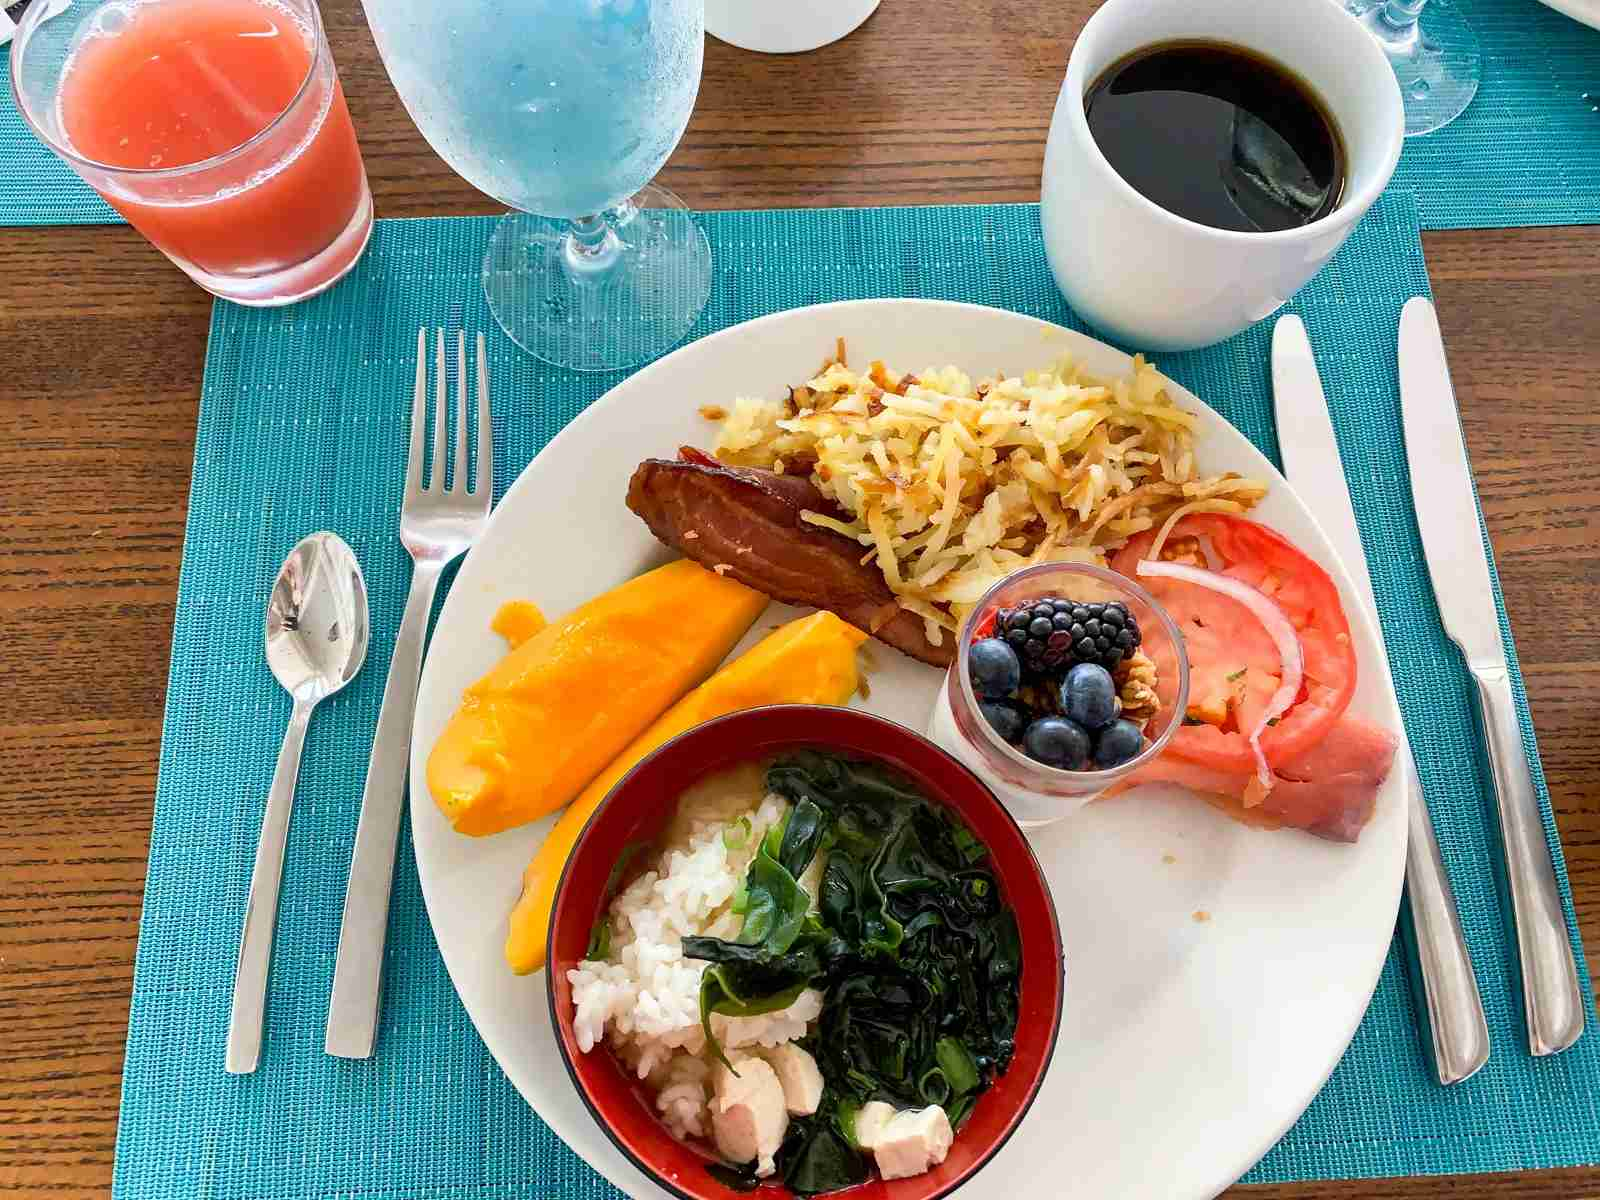 Free Platinum breakfast at the Westin Moana Surfrider in Hawaii (Photo by Summer Hull / The Points Guy)